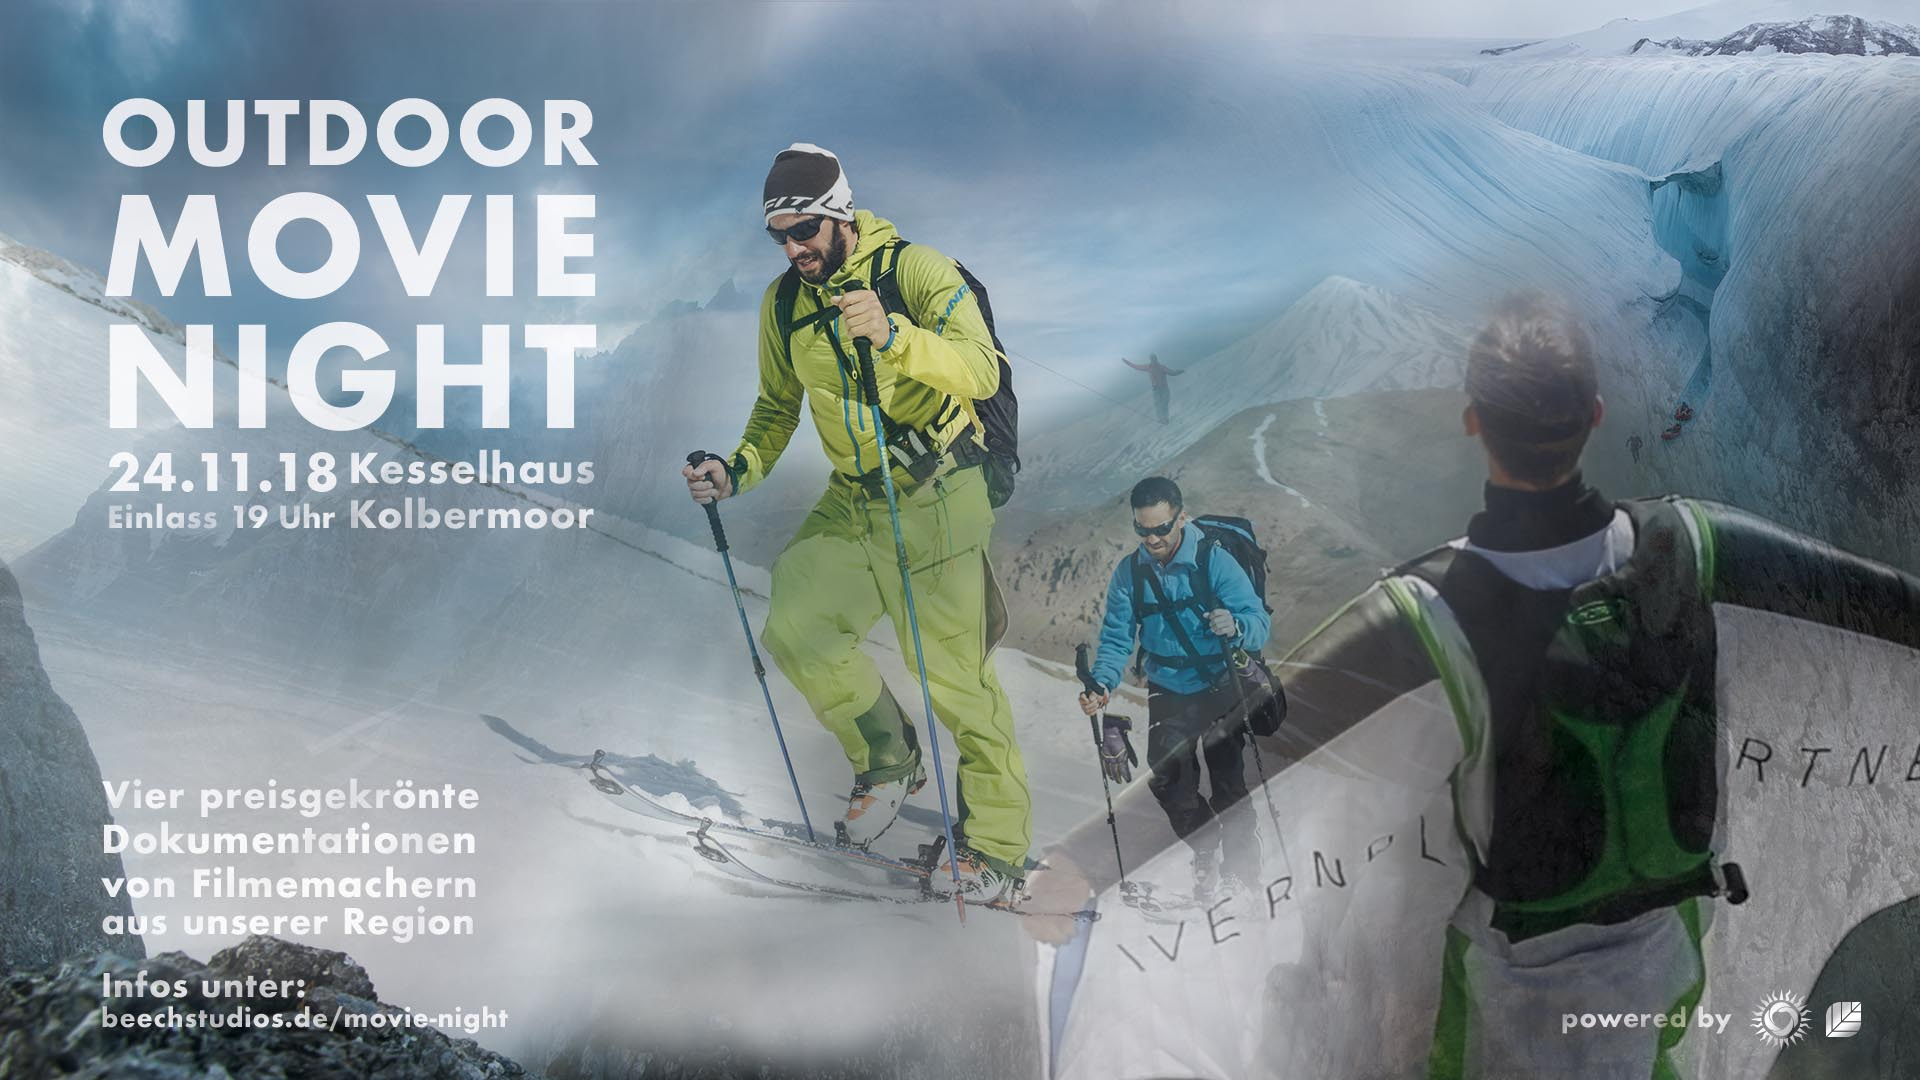 Events an der Alten Spinnerei: Ankündigung Outdoor Movie Night